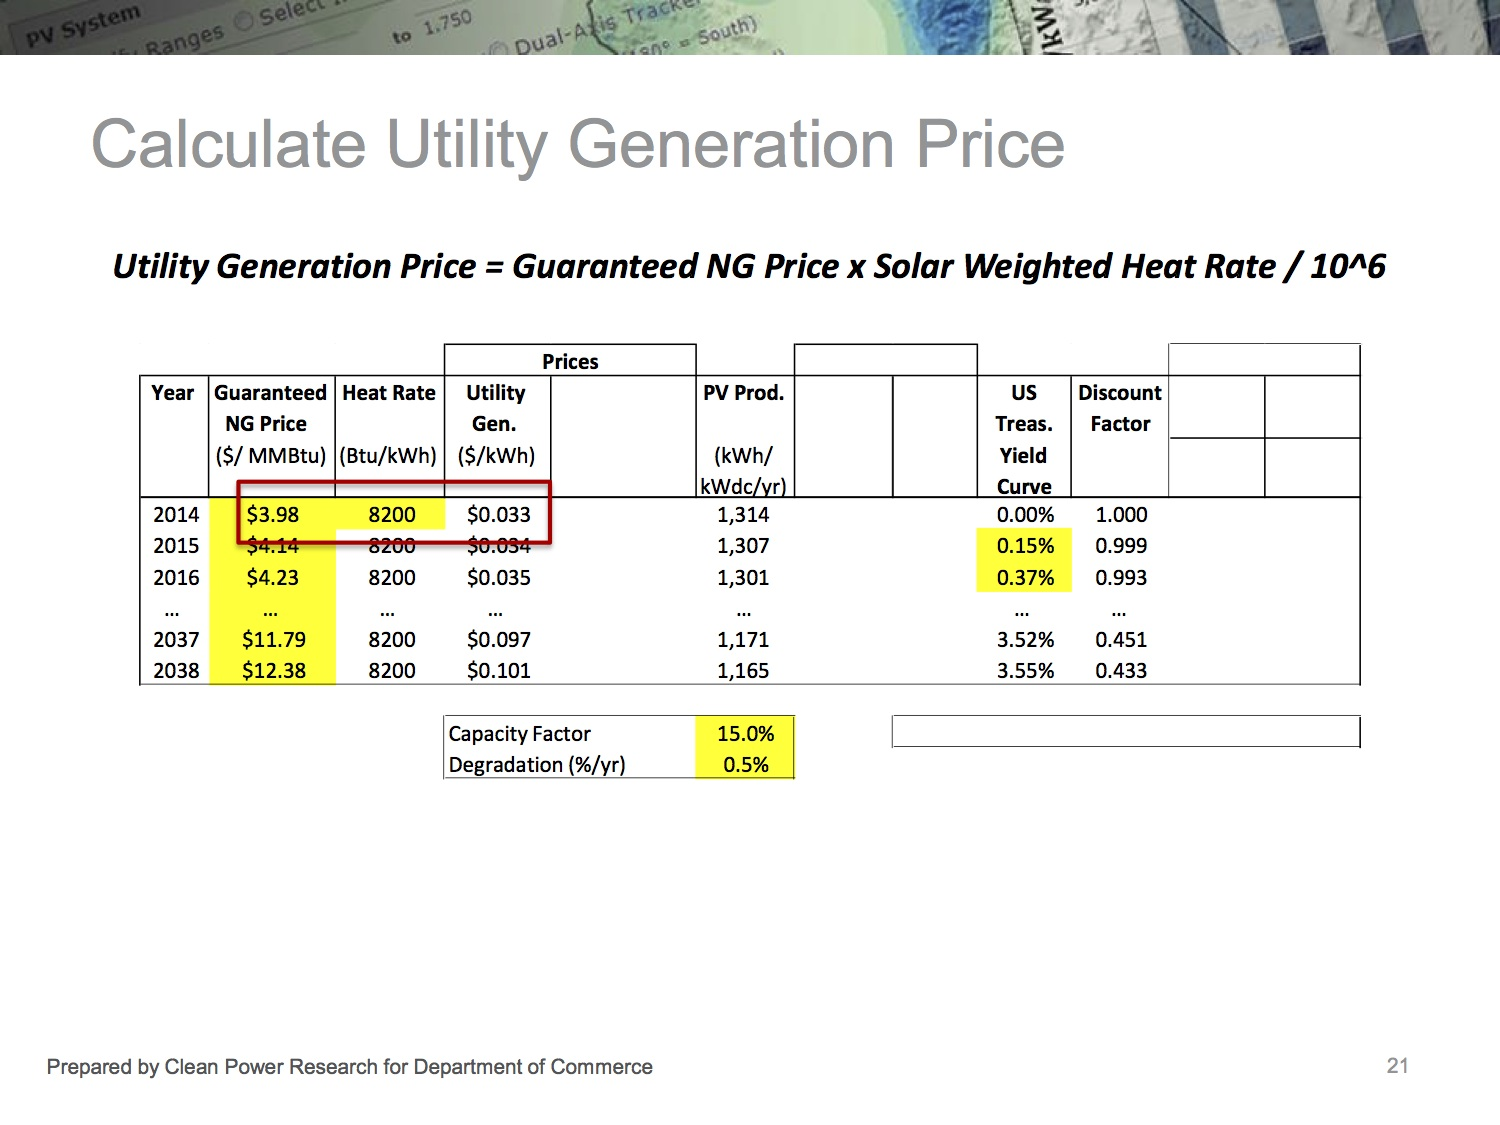 4 CPR-Fuel-Value cost of generation